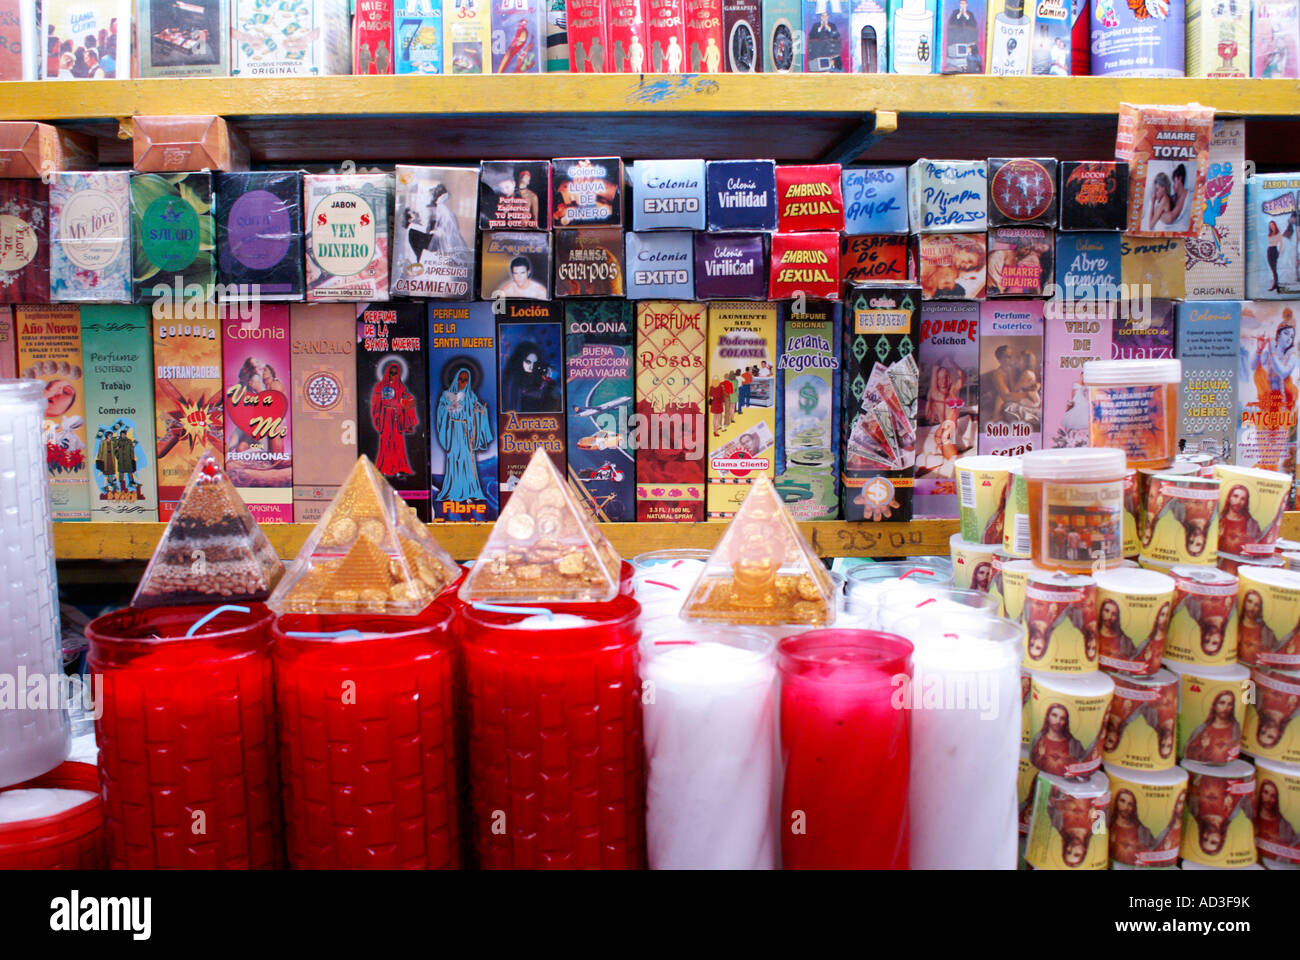 Candles and magical potions for sale in the market, city of